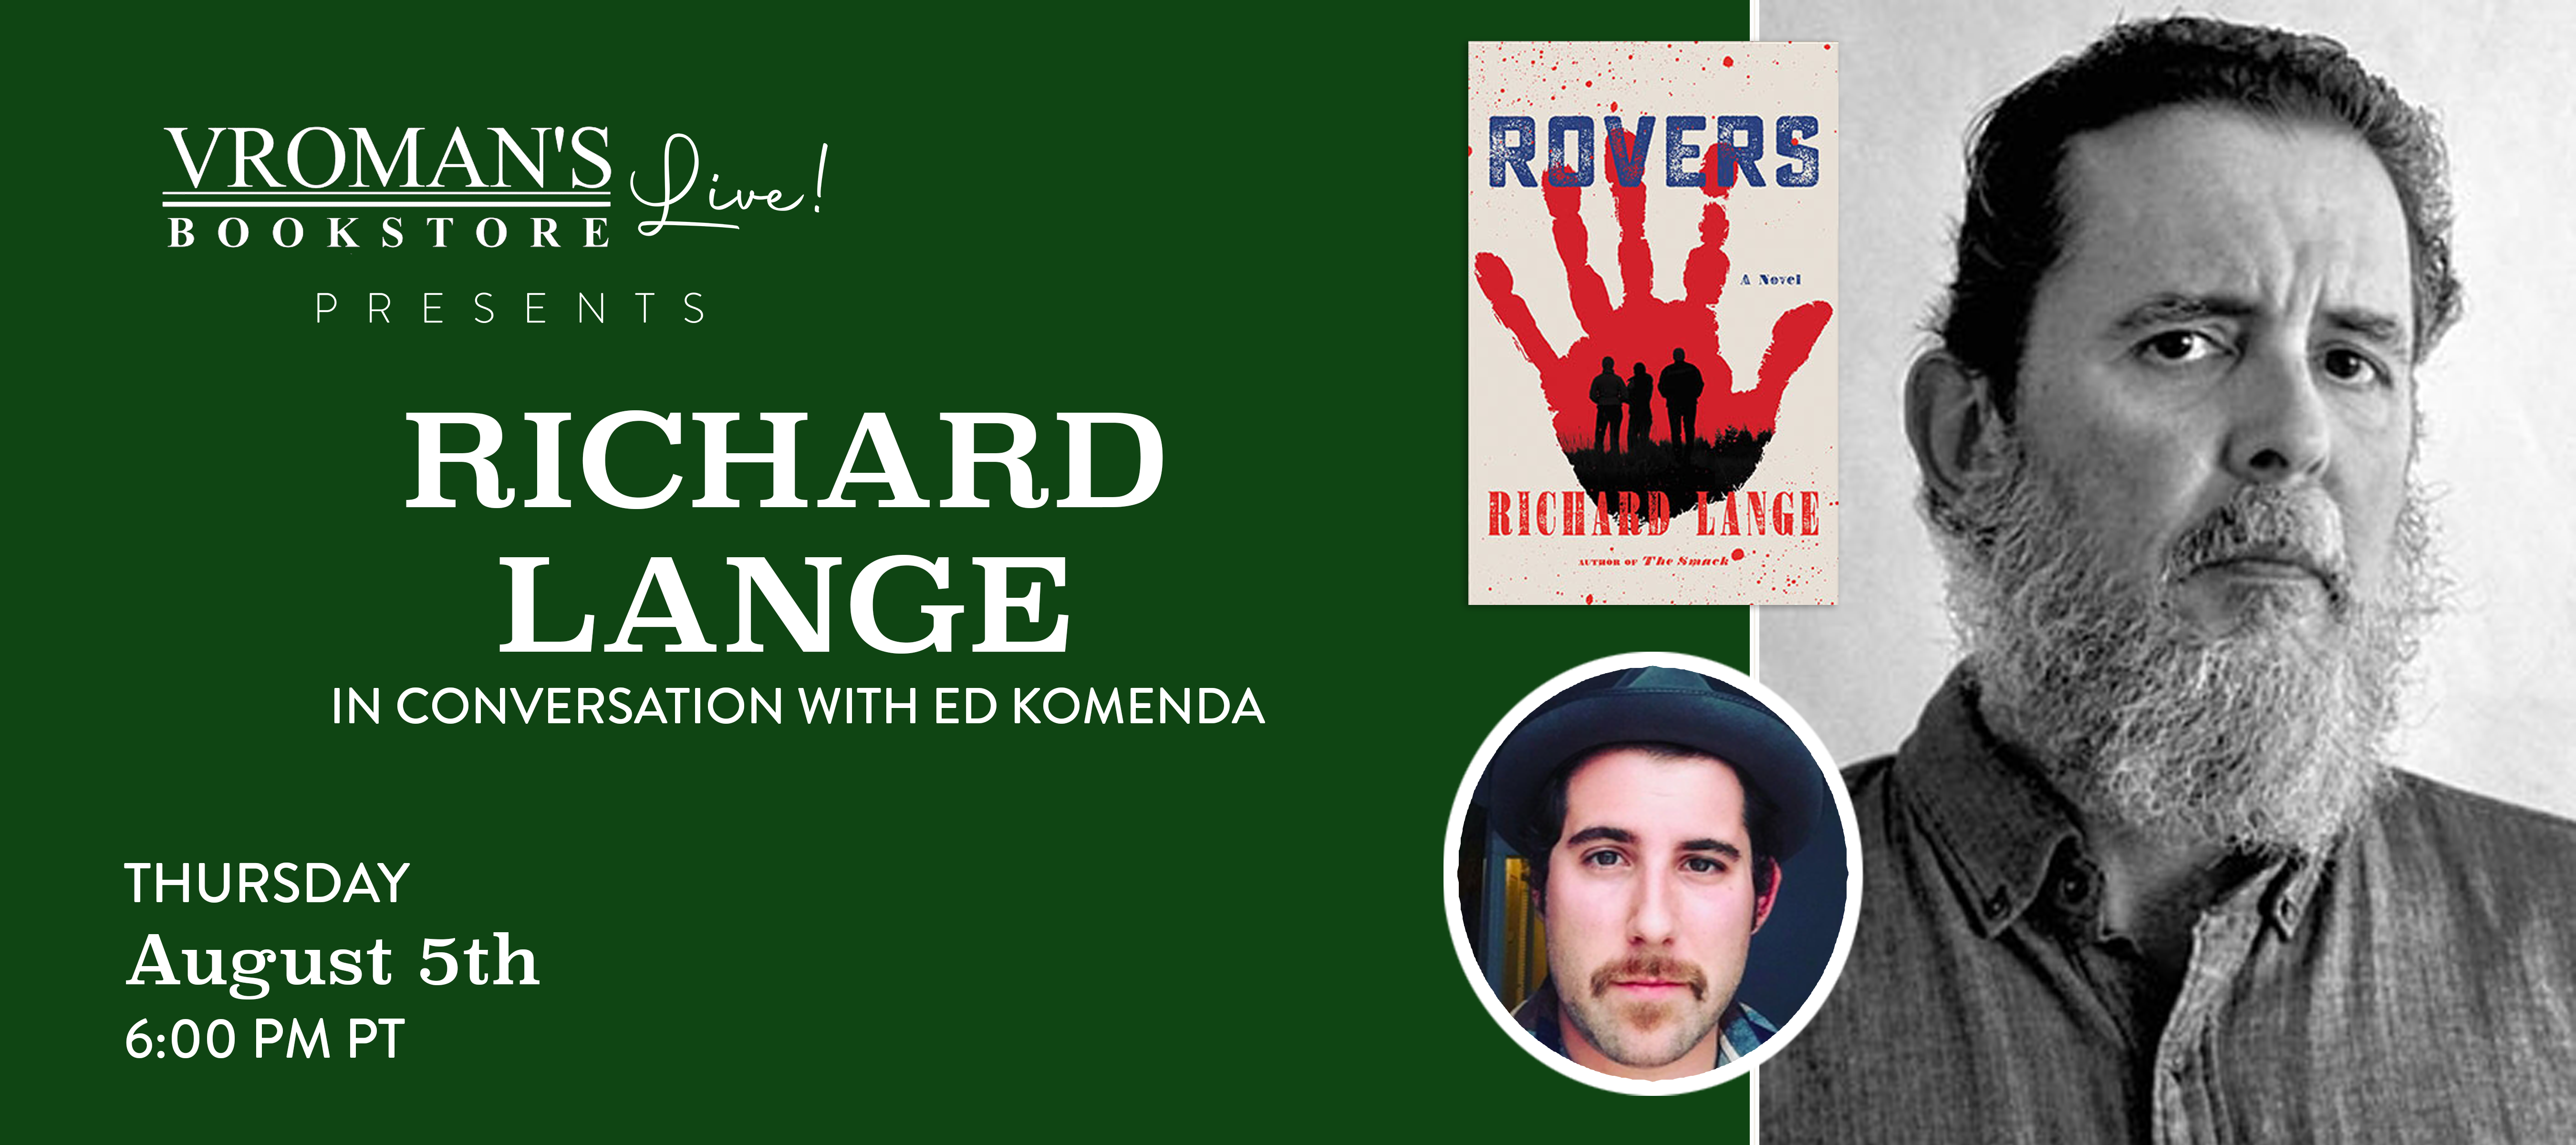 Image of banner for Richard Lange, in conversation with Ed Komenda, discusses Rovers